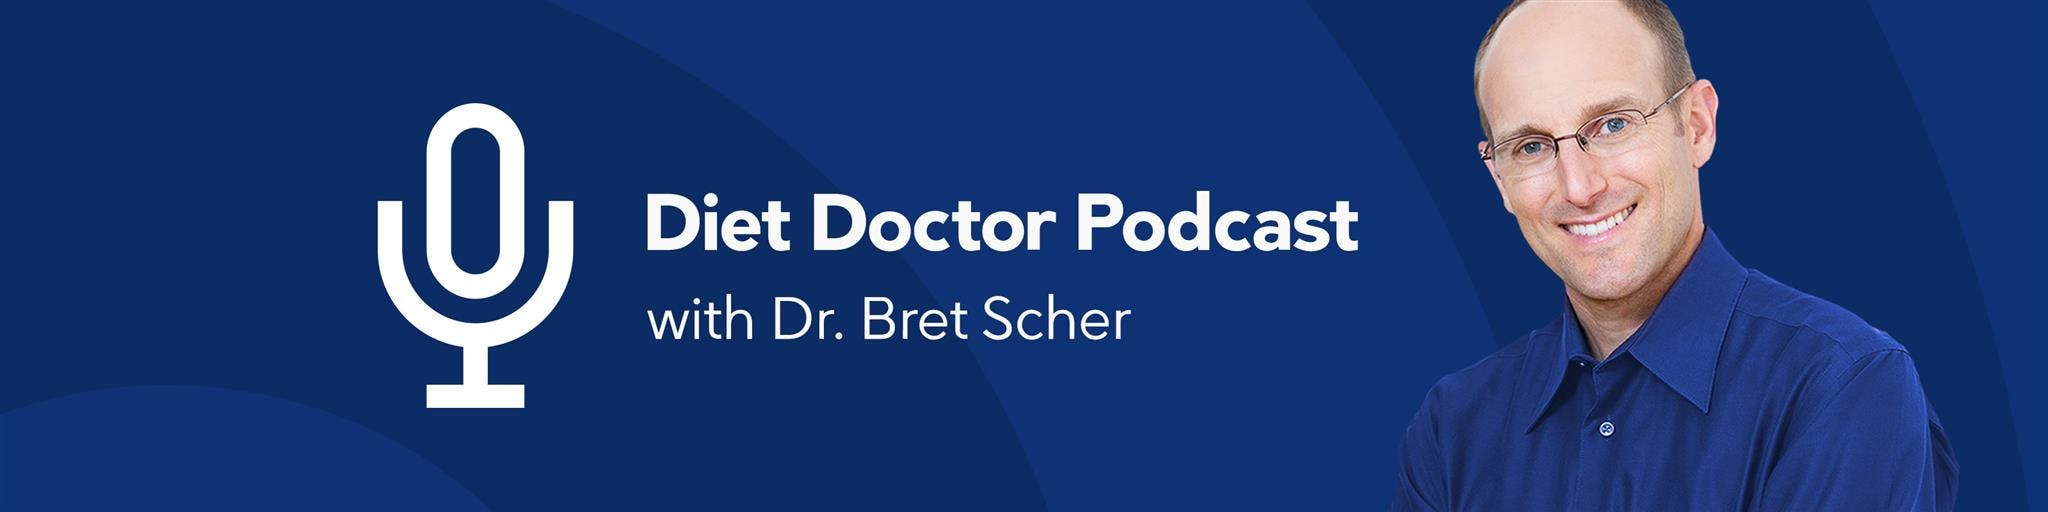 The Diet Doctor Podcast